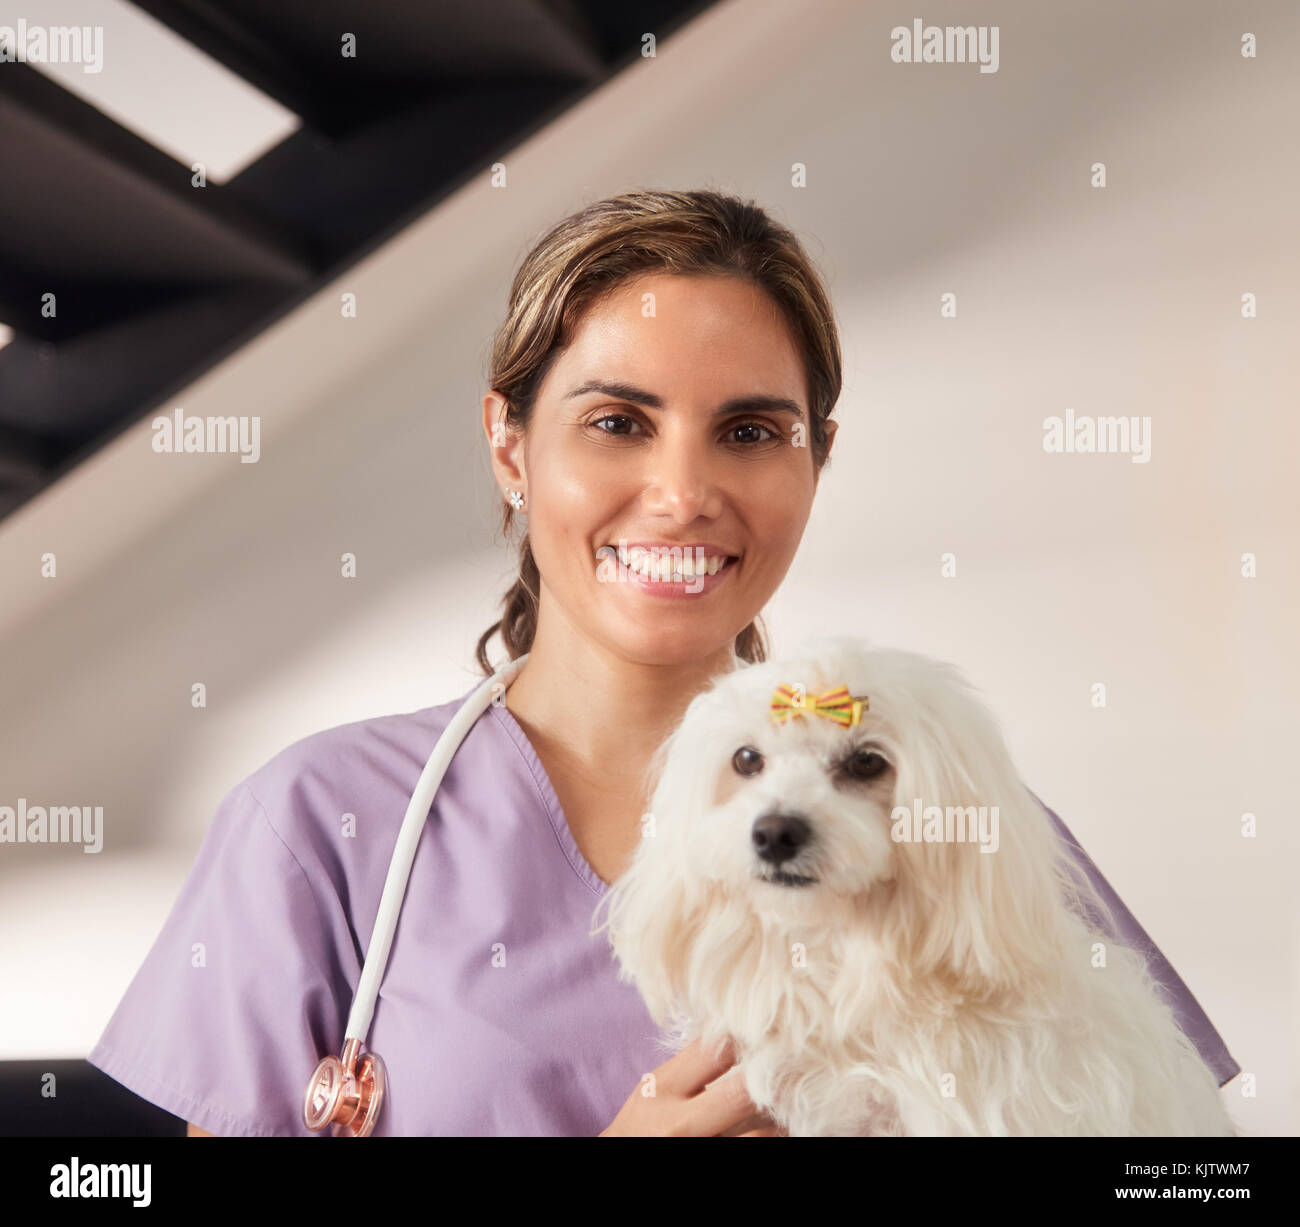 Confident young hispanic woman at work as veterinary, happy vet playing with dog during house call. Animal doctor - Stock Image